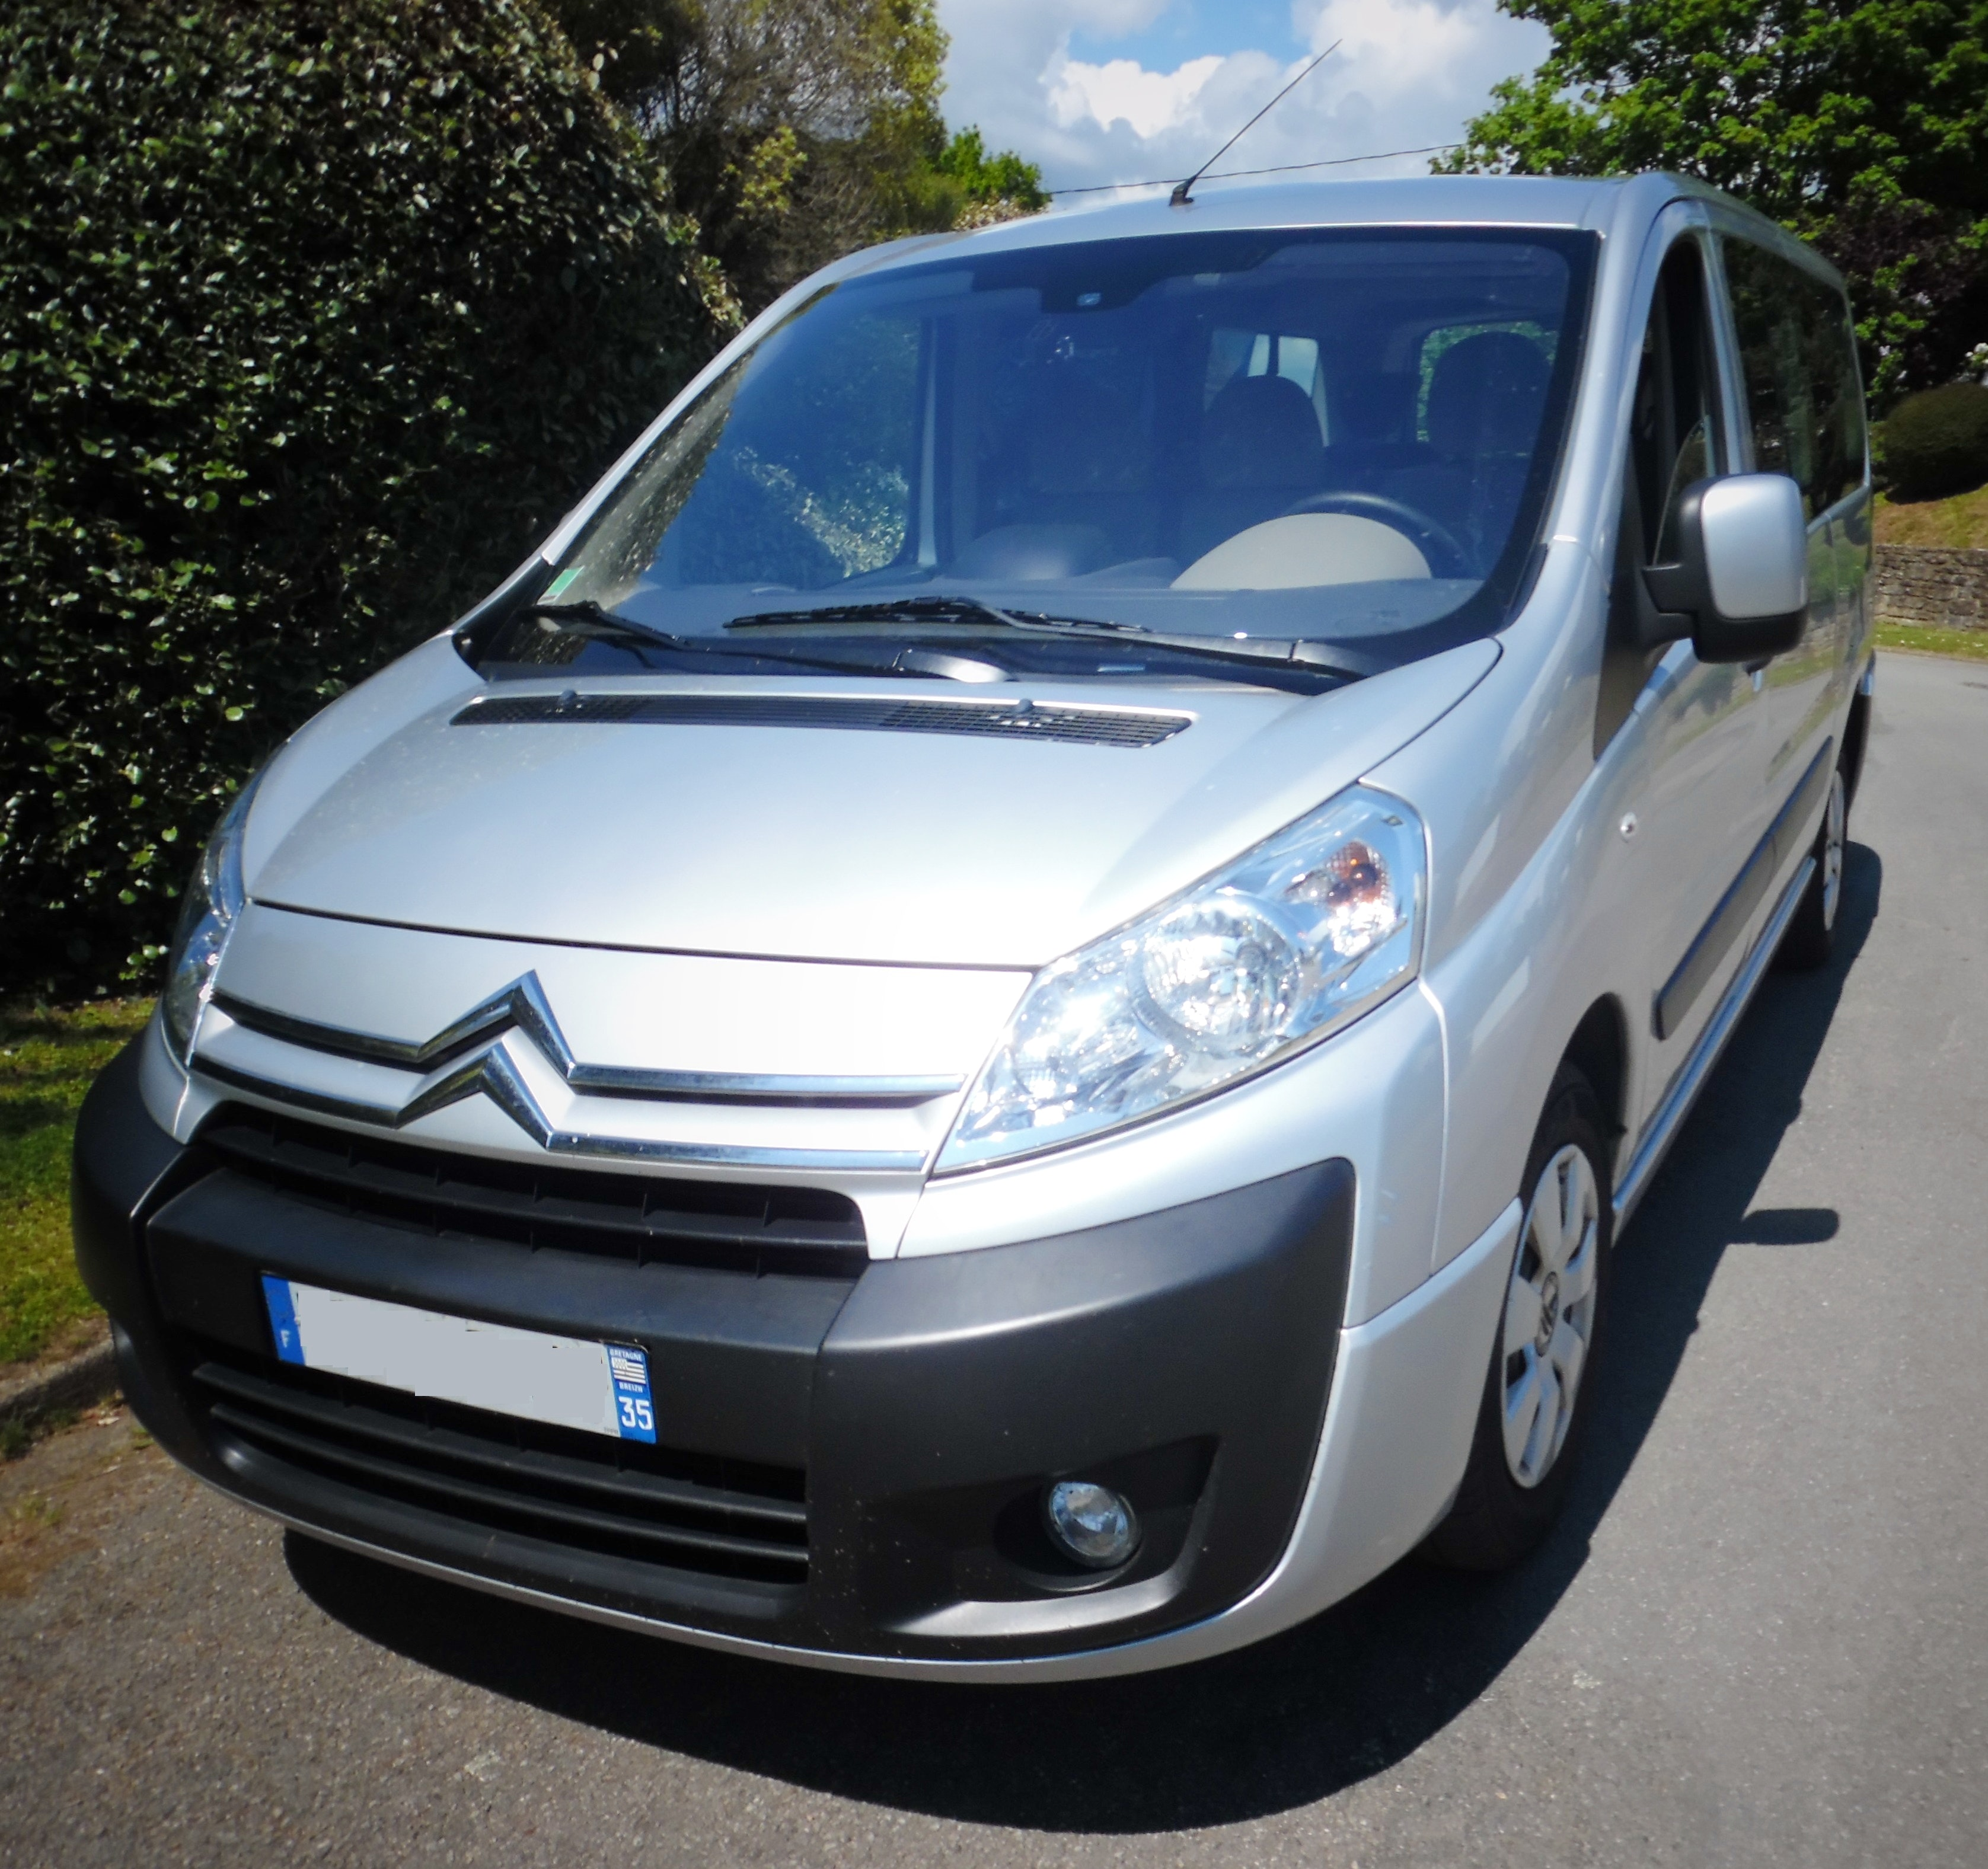 Citroen Jumpy LH1 128cv 8/9pl (p), 2011, Diesel, 9 places et plus